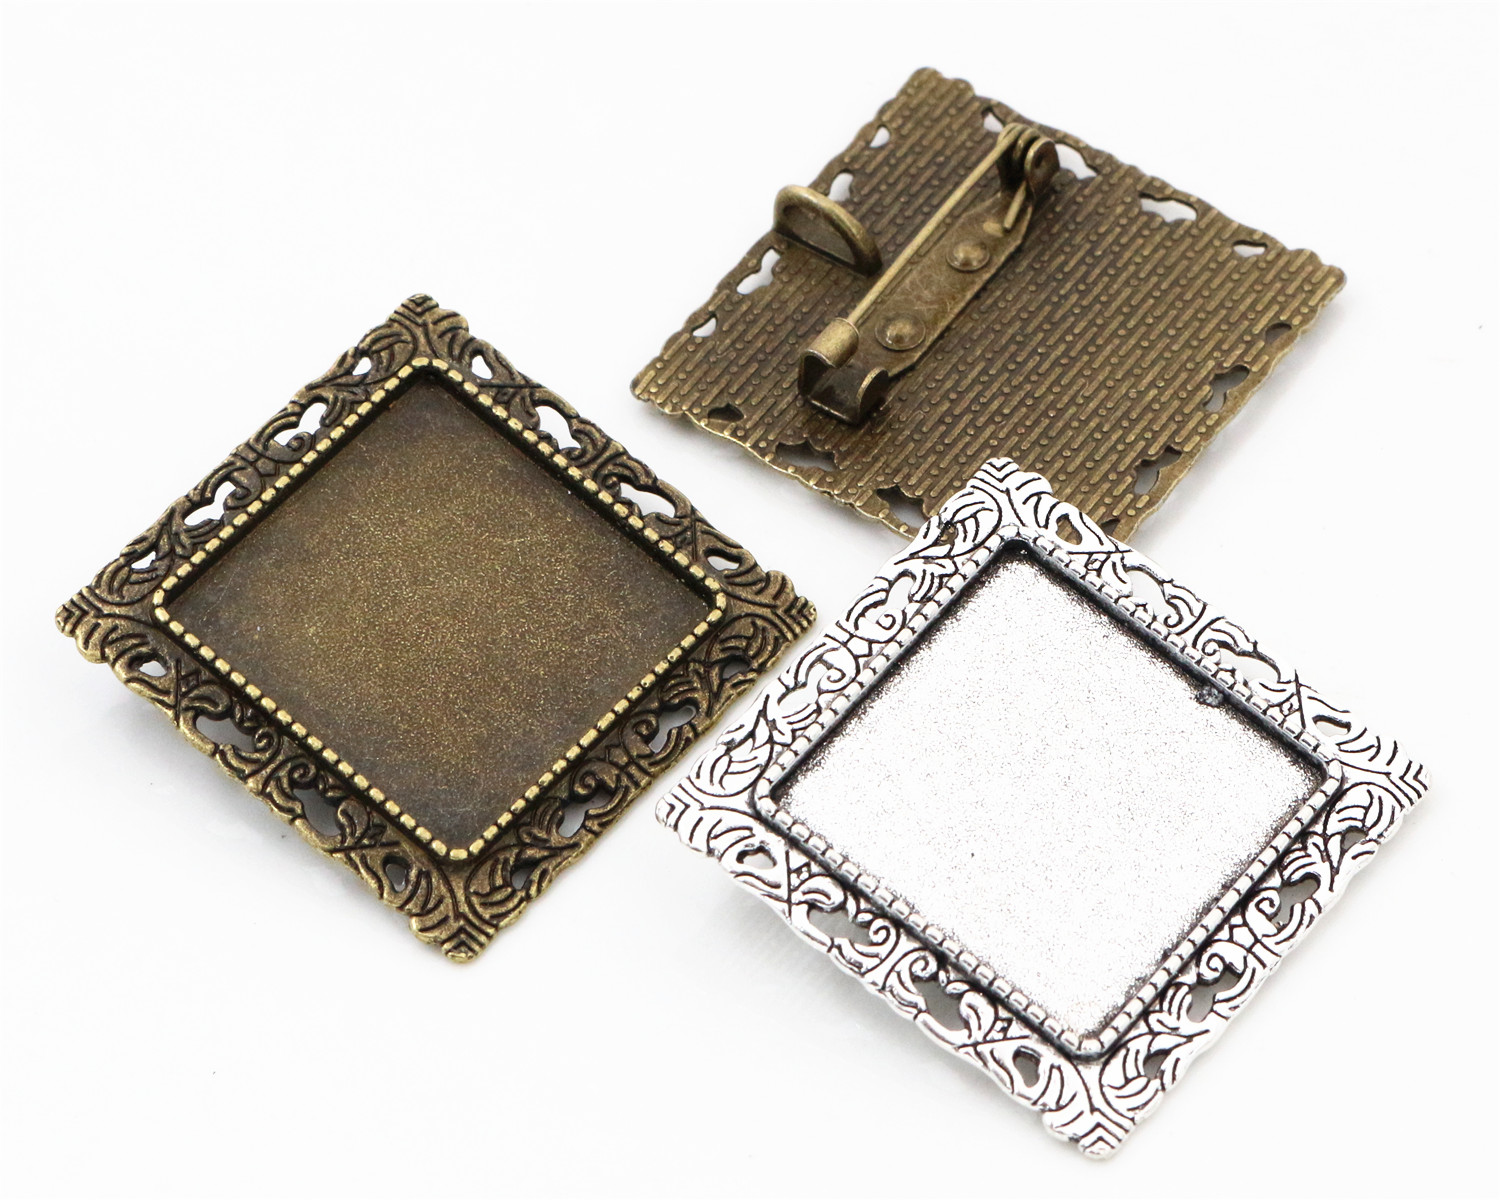 New Fashion  2pcs 25mm Inner Size Antique Silver and Bronze Brooch Square Cabochon Base Setting New Fashion  2pcs 25mm Inner Size Antique Silver and Bronze Brooch Square Cabochon Base Setting